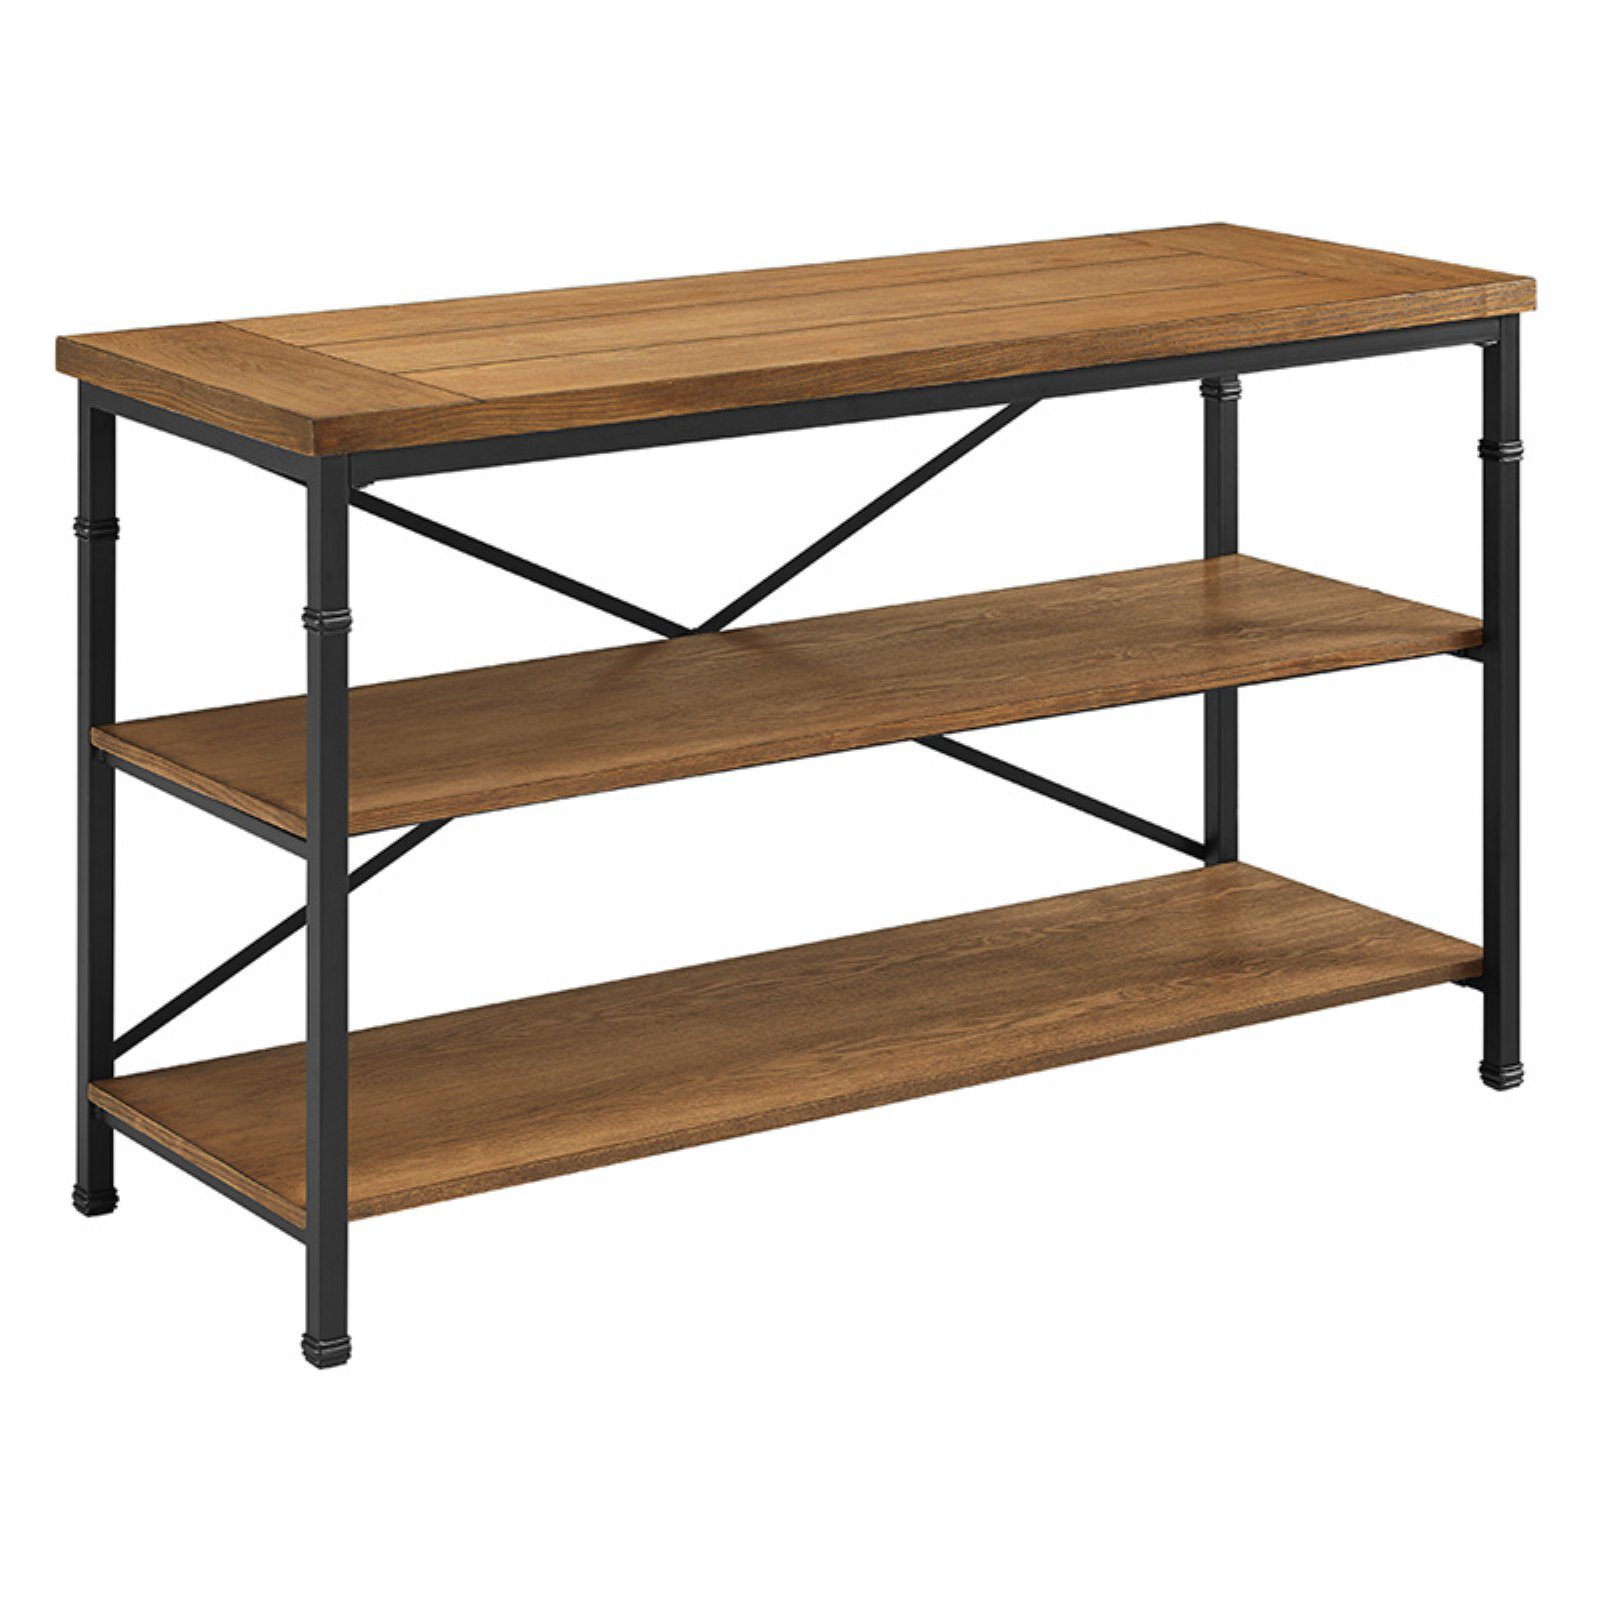 Linon Austin TV Stand, TVs up to 52 inches, Black & Ash Veneer